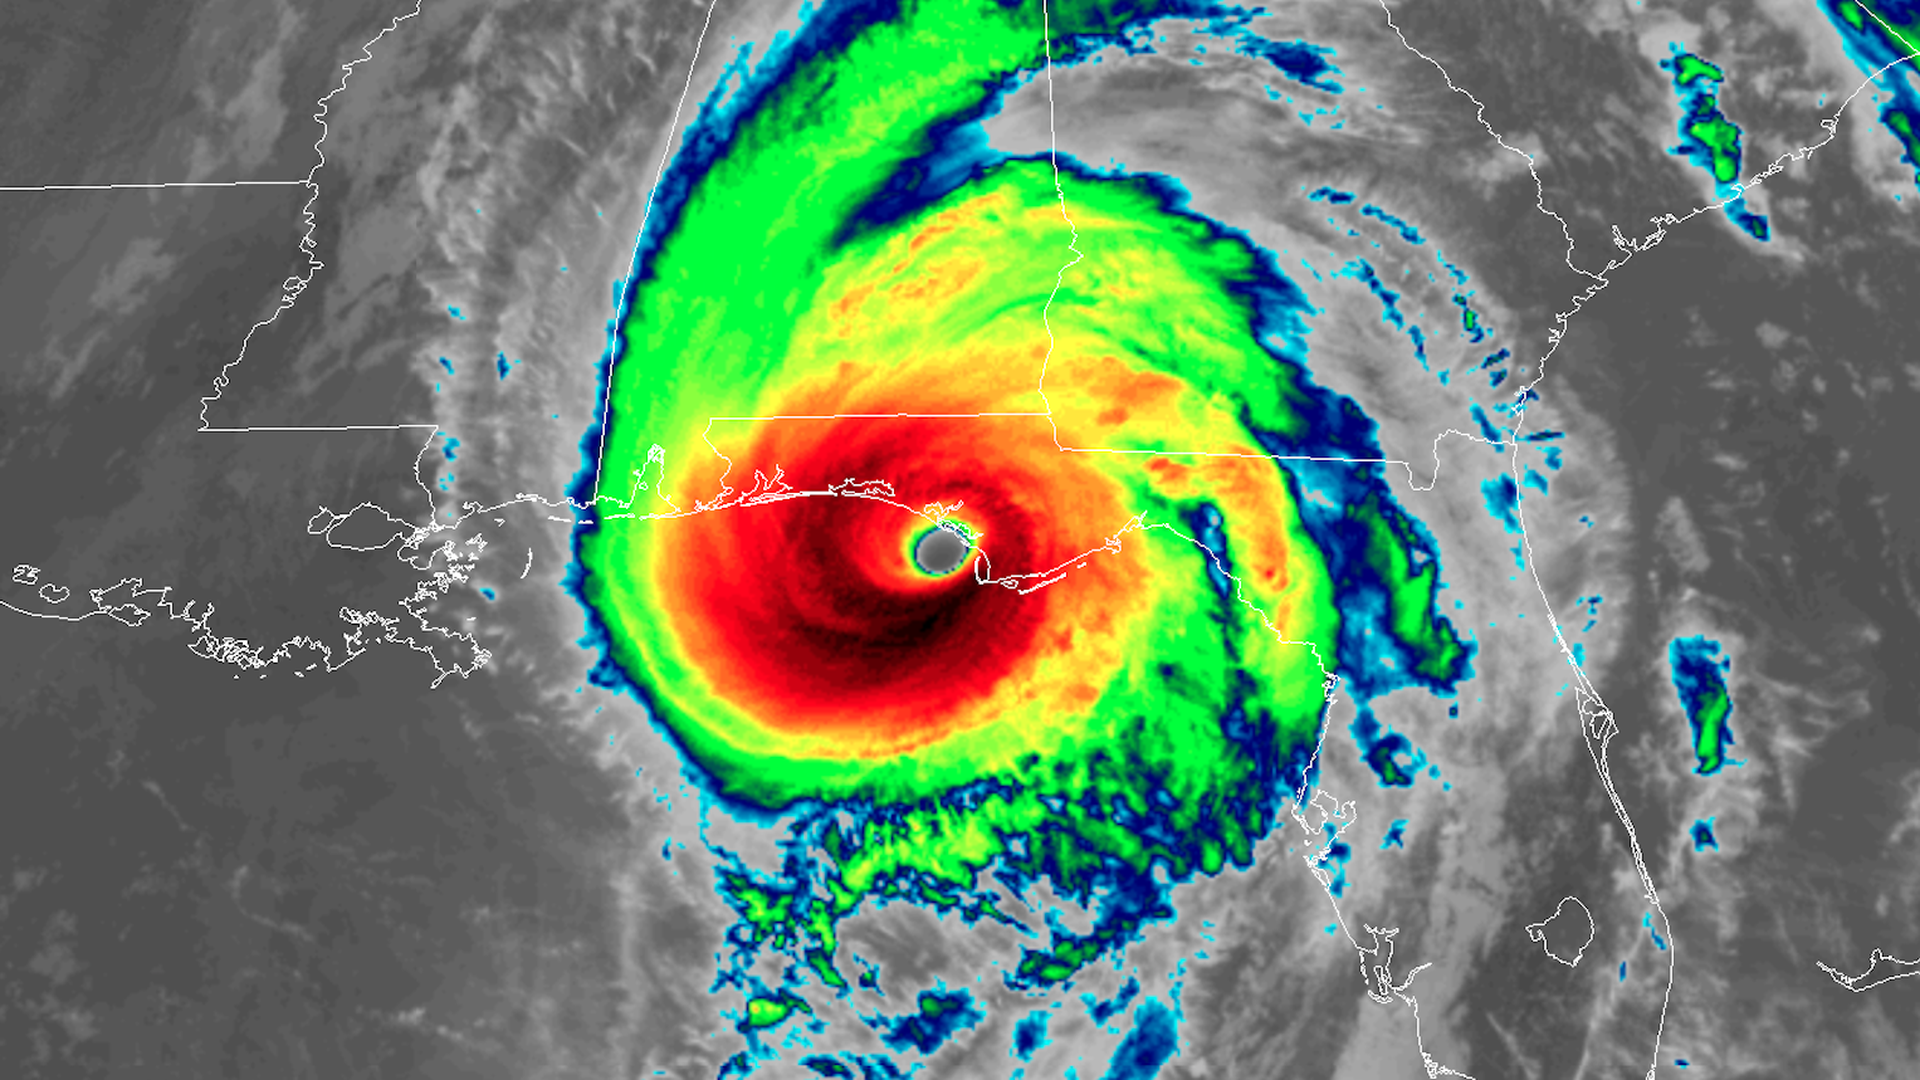 Hurricane Michael making landfall in the Florida Panhandle as one of the most intense hurricanes on record.